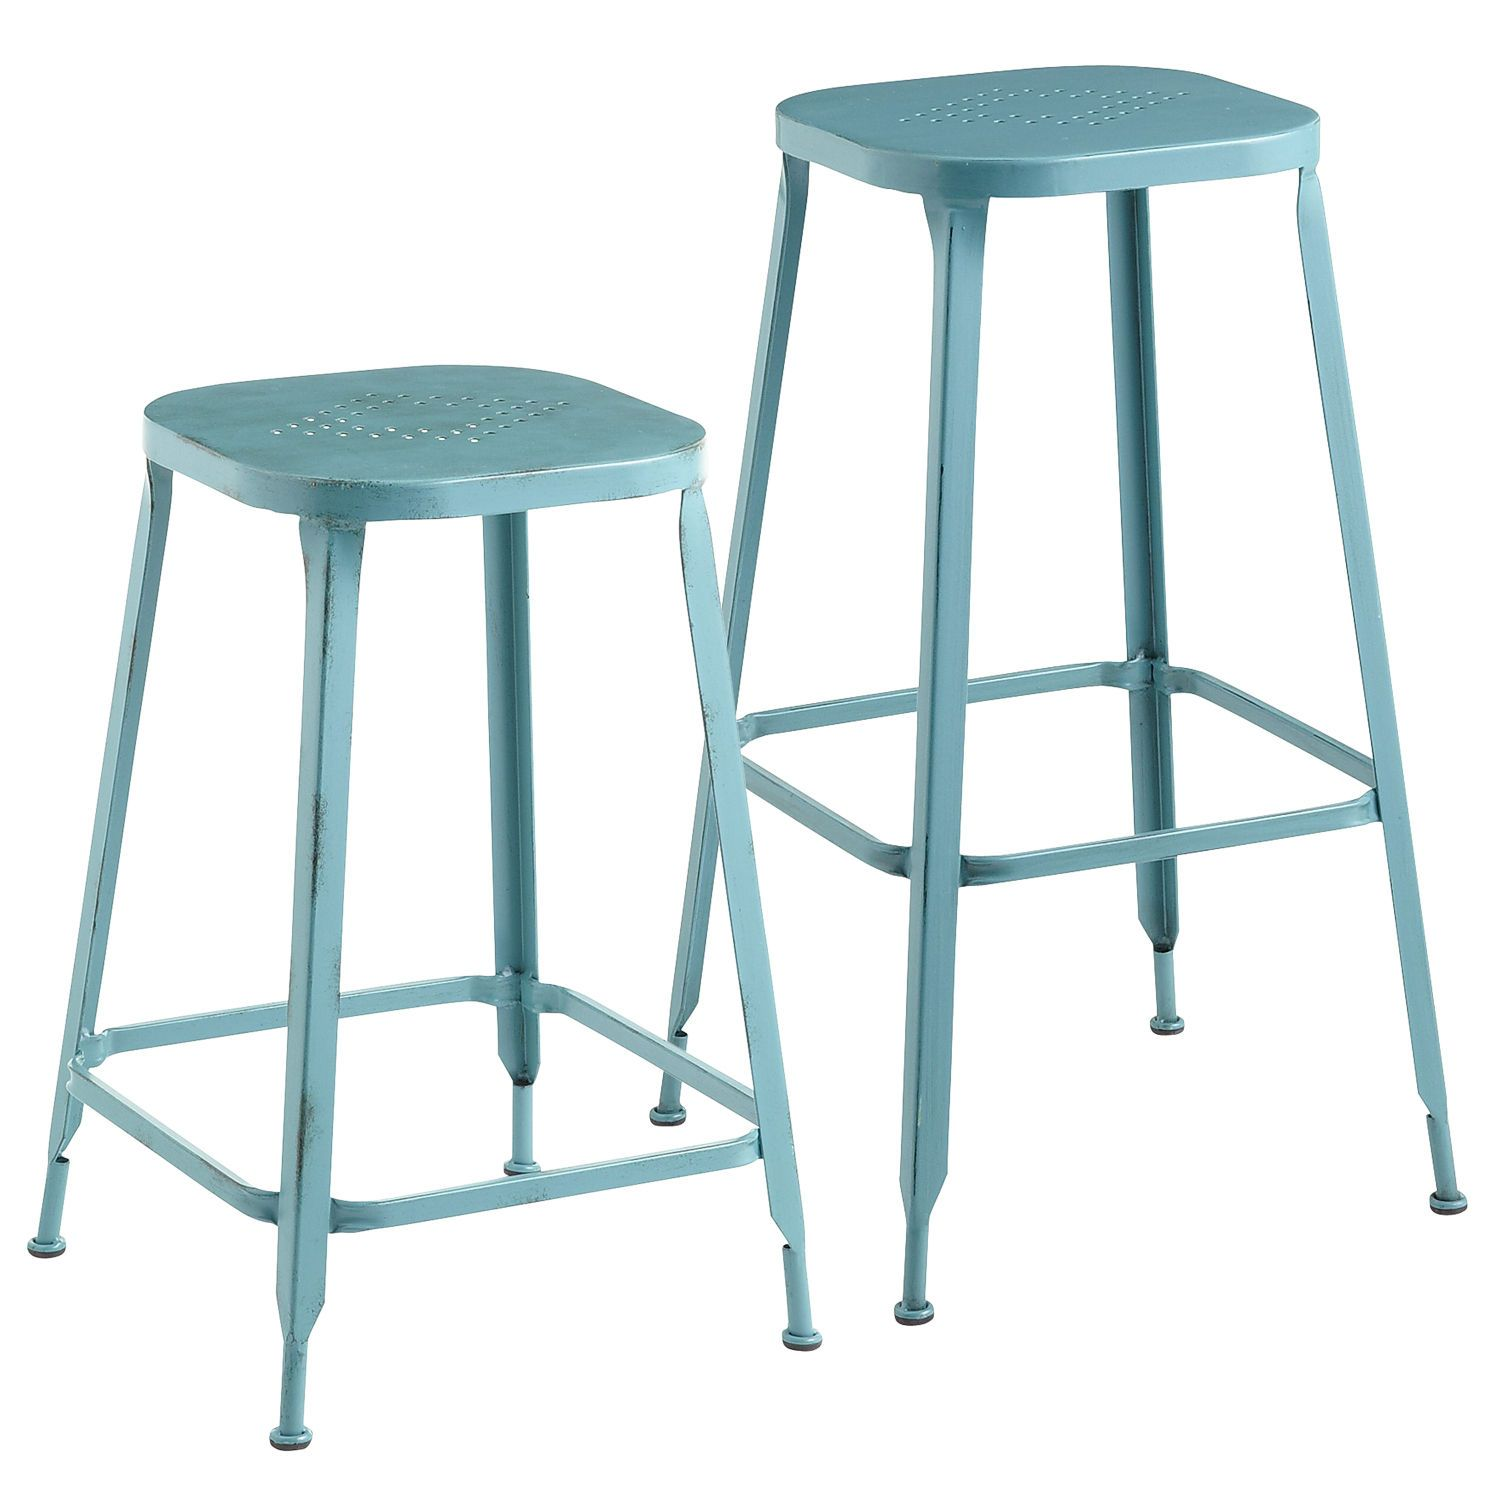 Surprising Weldon Backless Bar Counter Stools Teal Pier 1 Imports Gmtry Best Dining Table And Chair Ideas Images Gmtryco